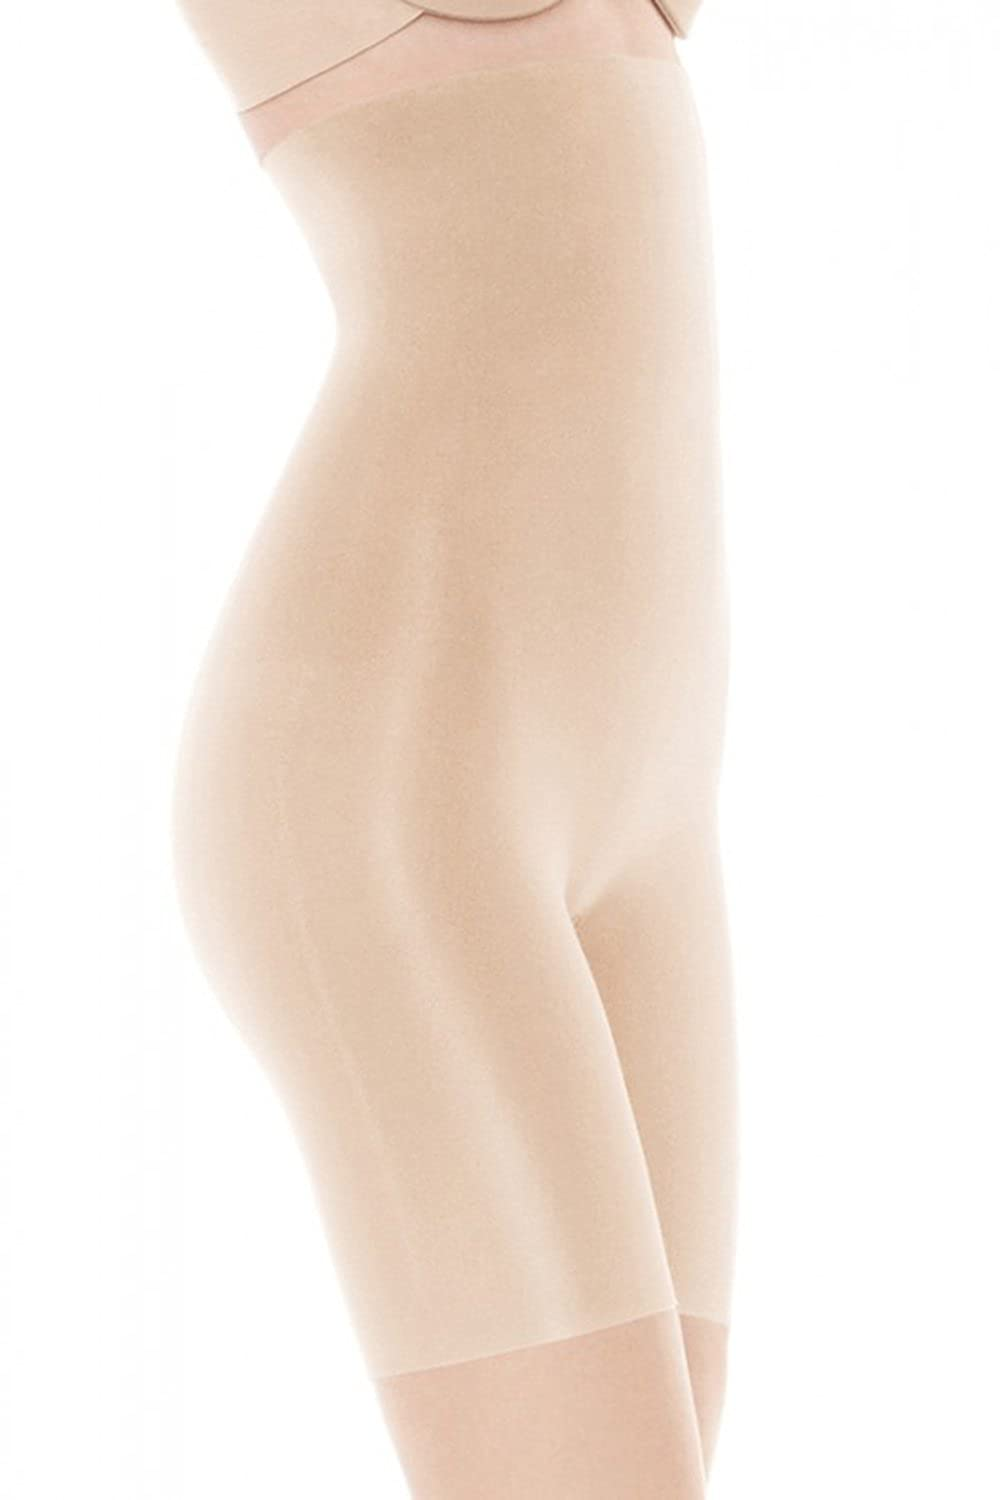 Spanx Undie-tectable High Rise Mid-Thigh 907A/Nude